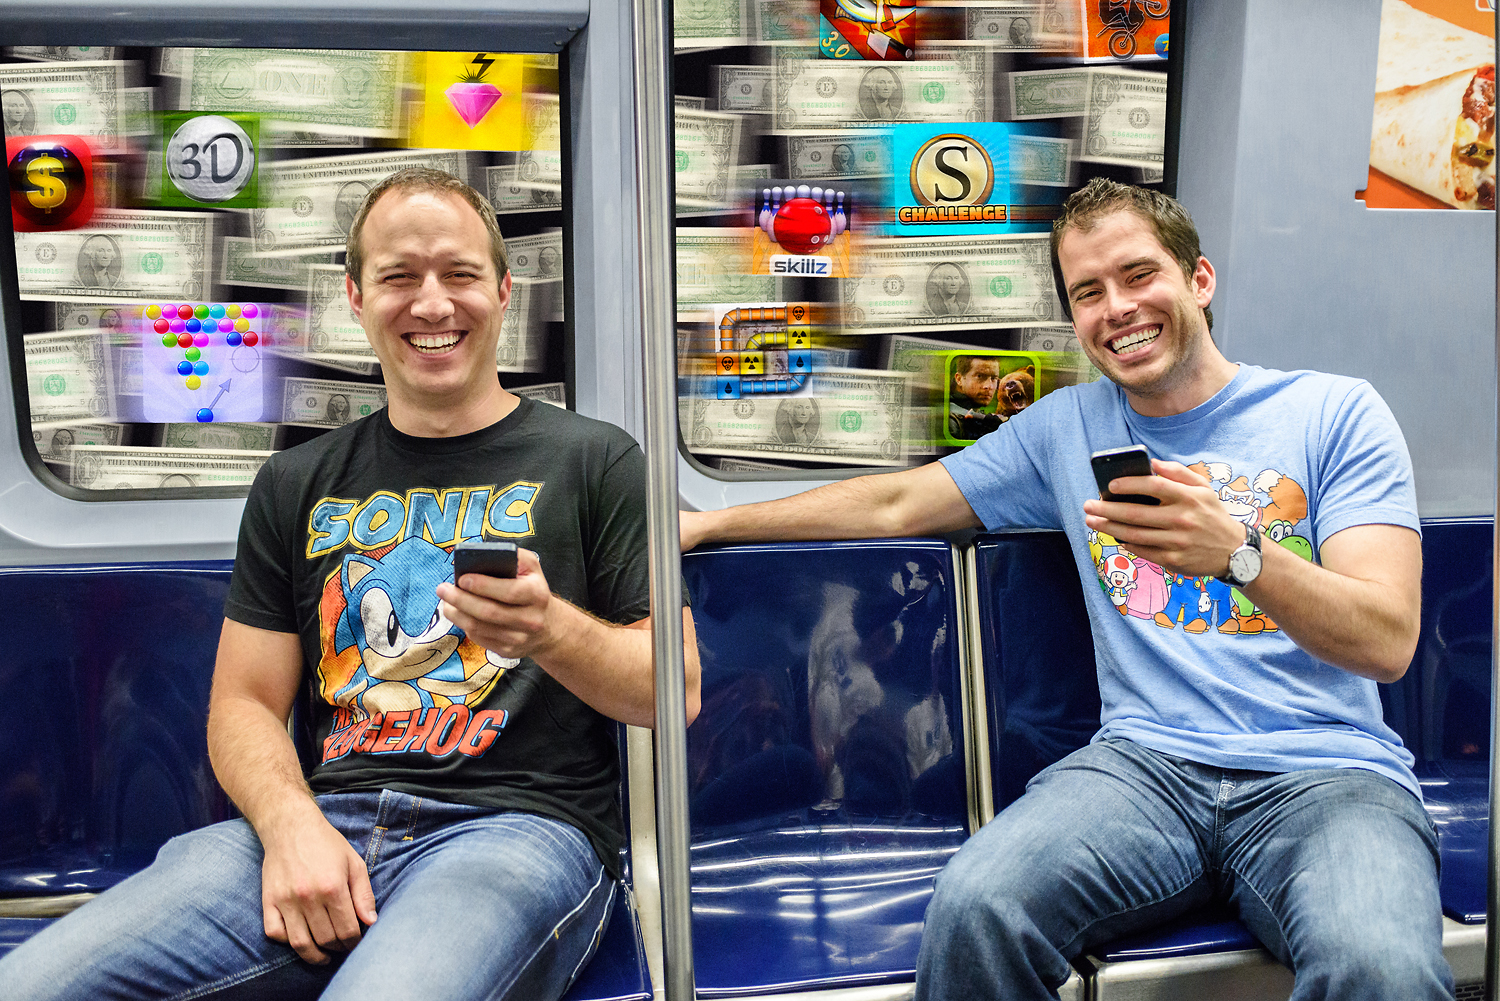 Mobile gaming for money - Most people use their app while commuting, so we rode the T for an afternoon